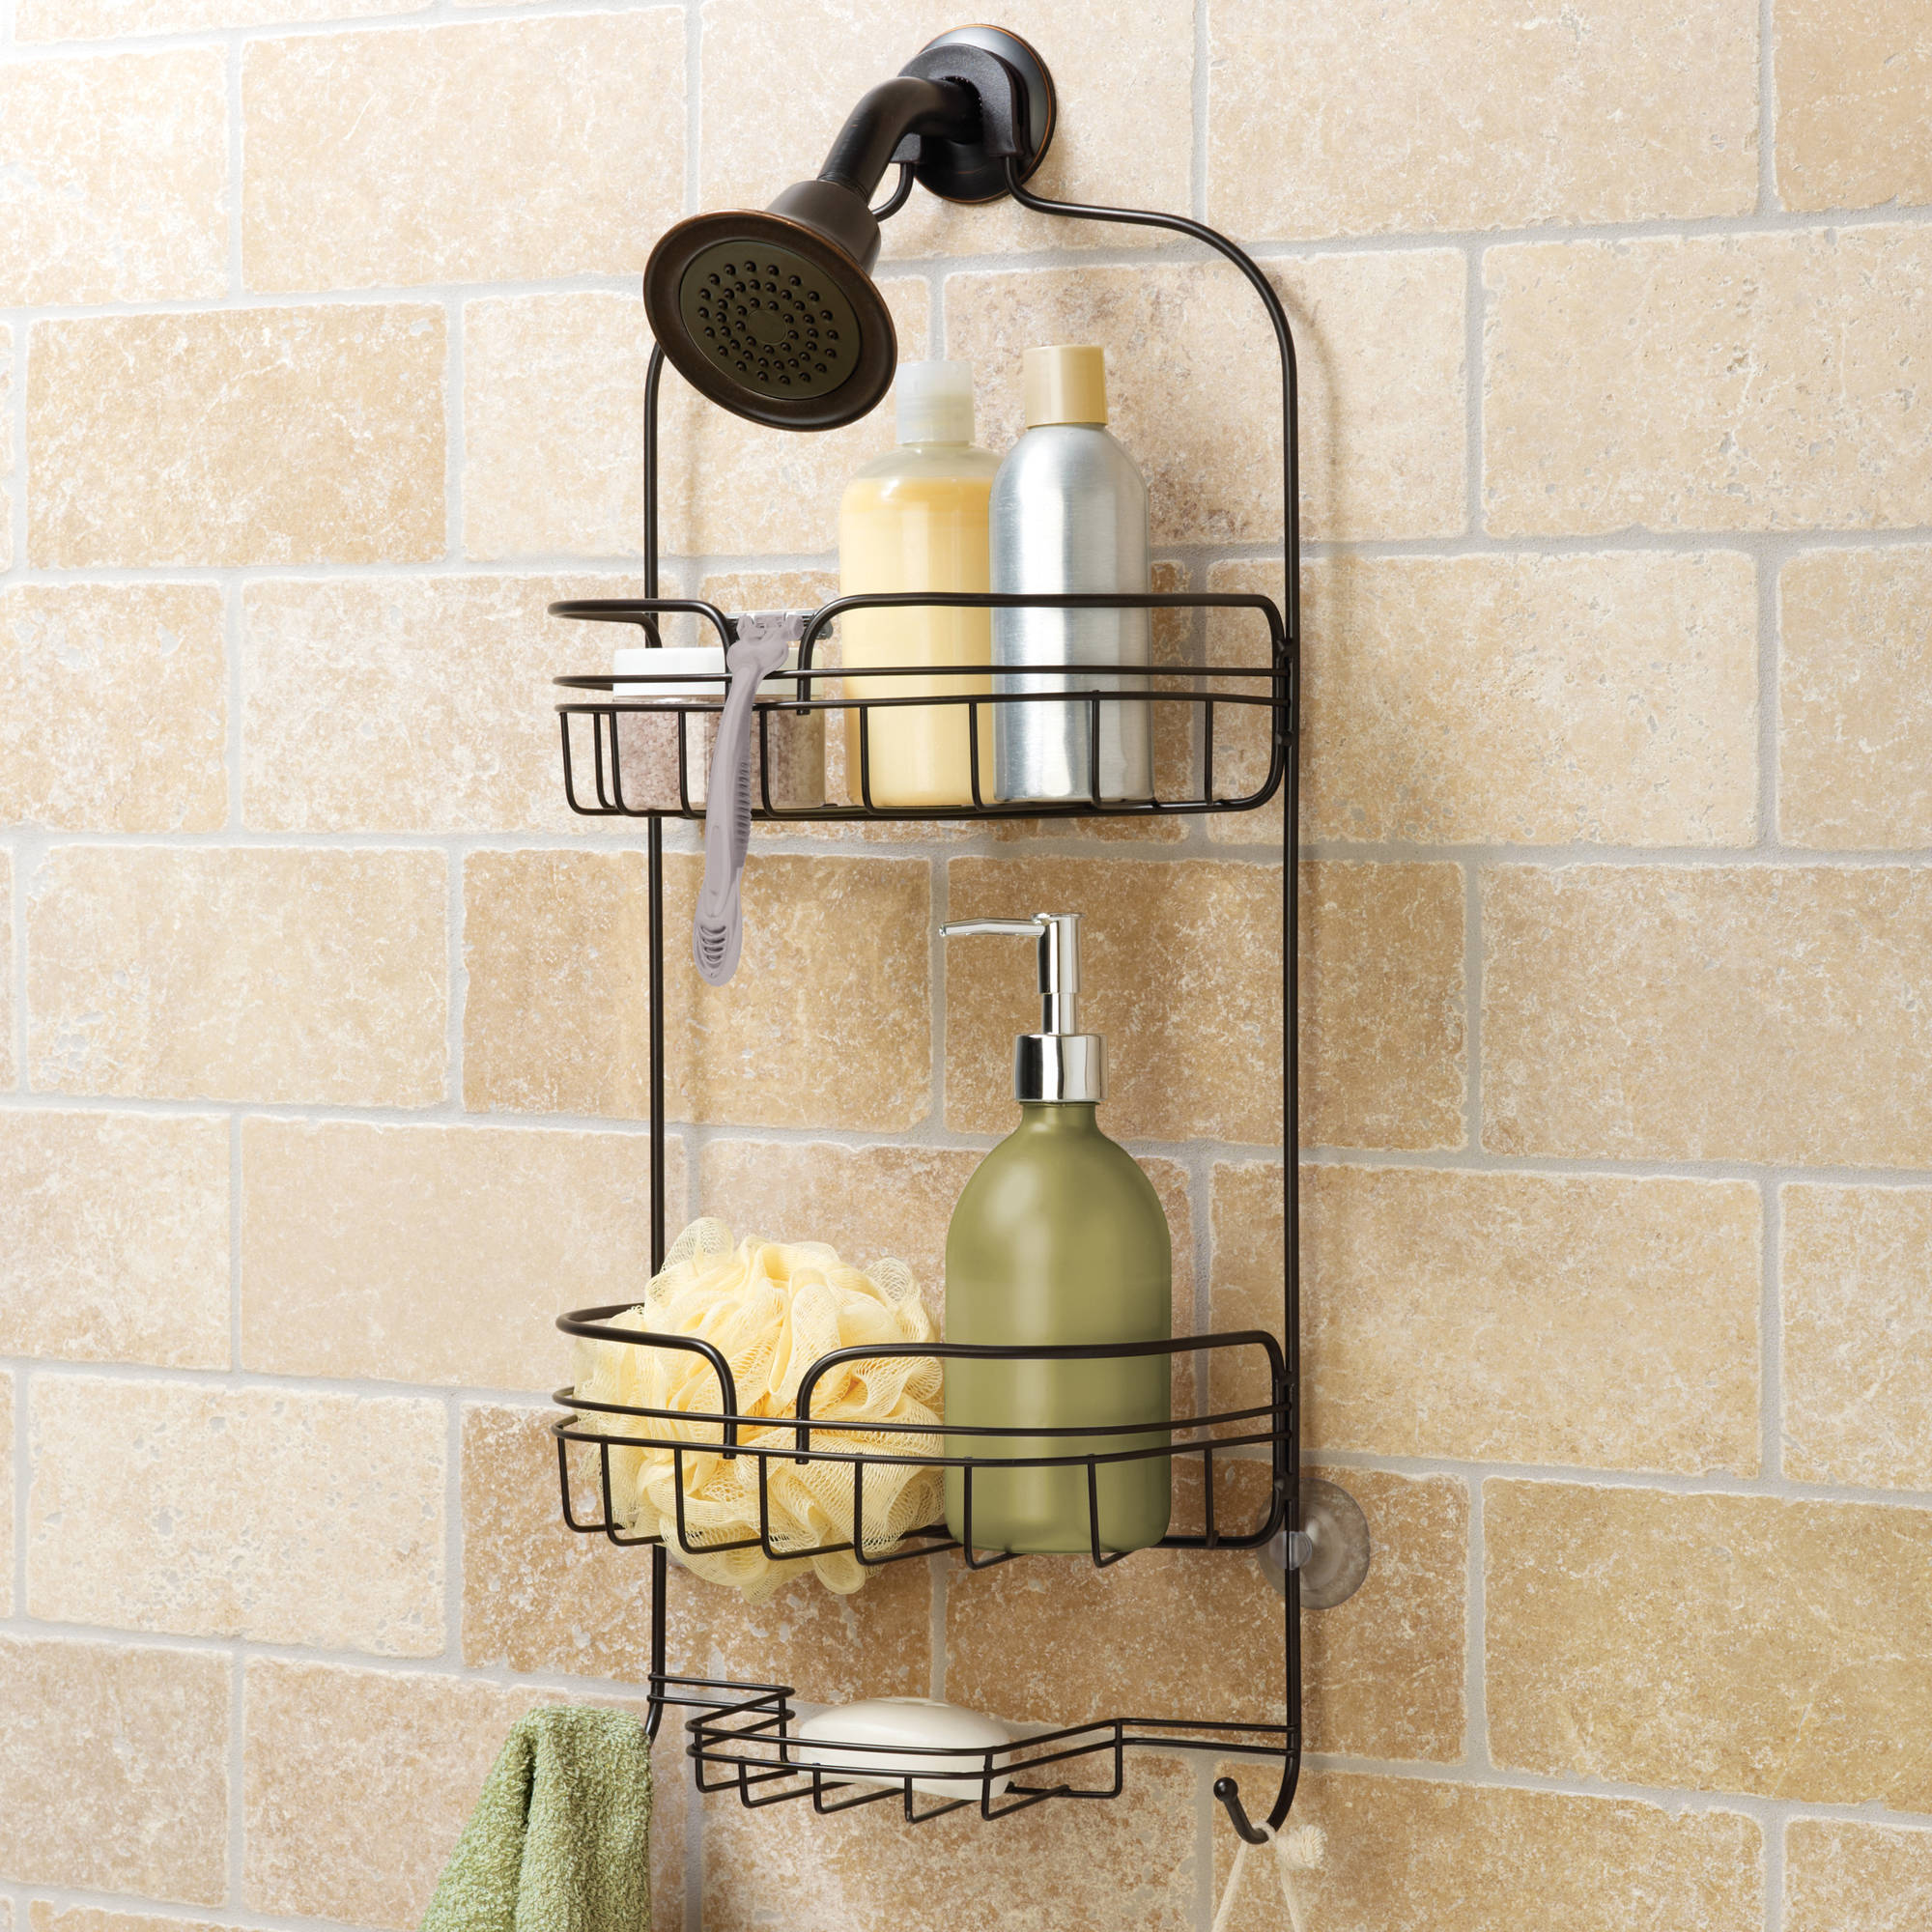 Hawthorne Place Large Shower Caddy, Bronze Stainless Steel by Zenith Products Corp